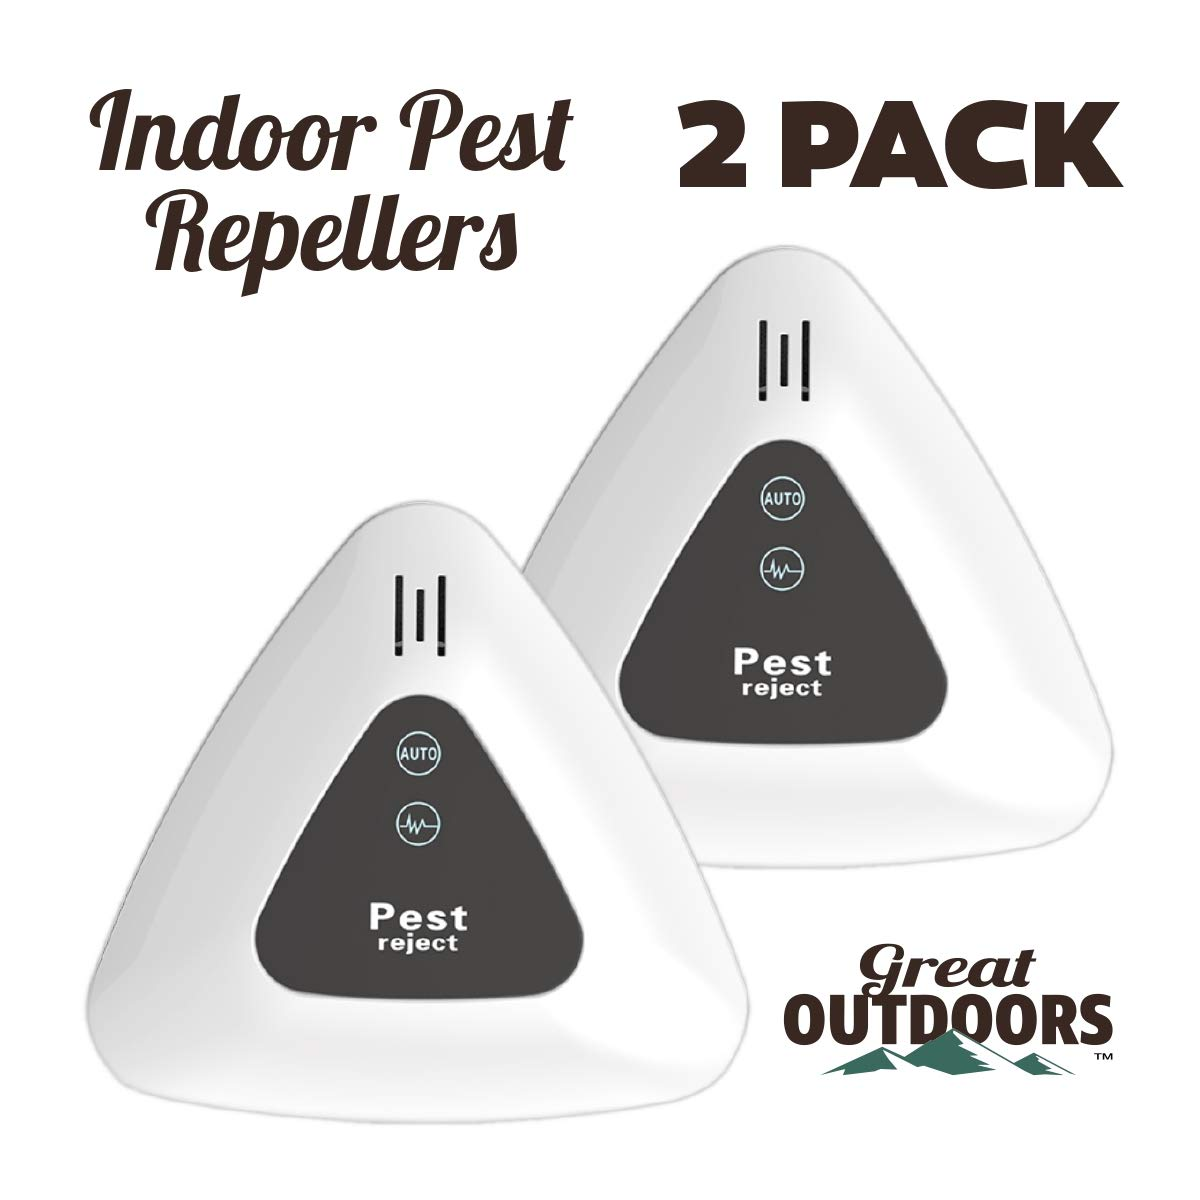 Ultrasonic Pest Repeller - Specialized Indoor Pest Defender - Electronic Control, Wall Plug-in - Used for Rodents and Insects (Ant, Cockroach, Mosquito, Bug) - Safe & Quiet ECO-Friendly Device by Great Outdoors